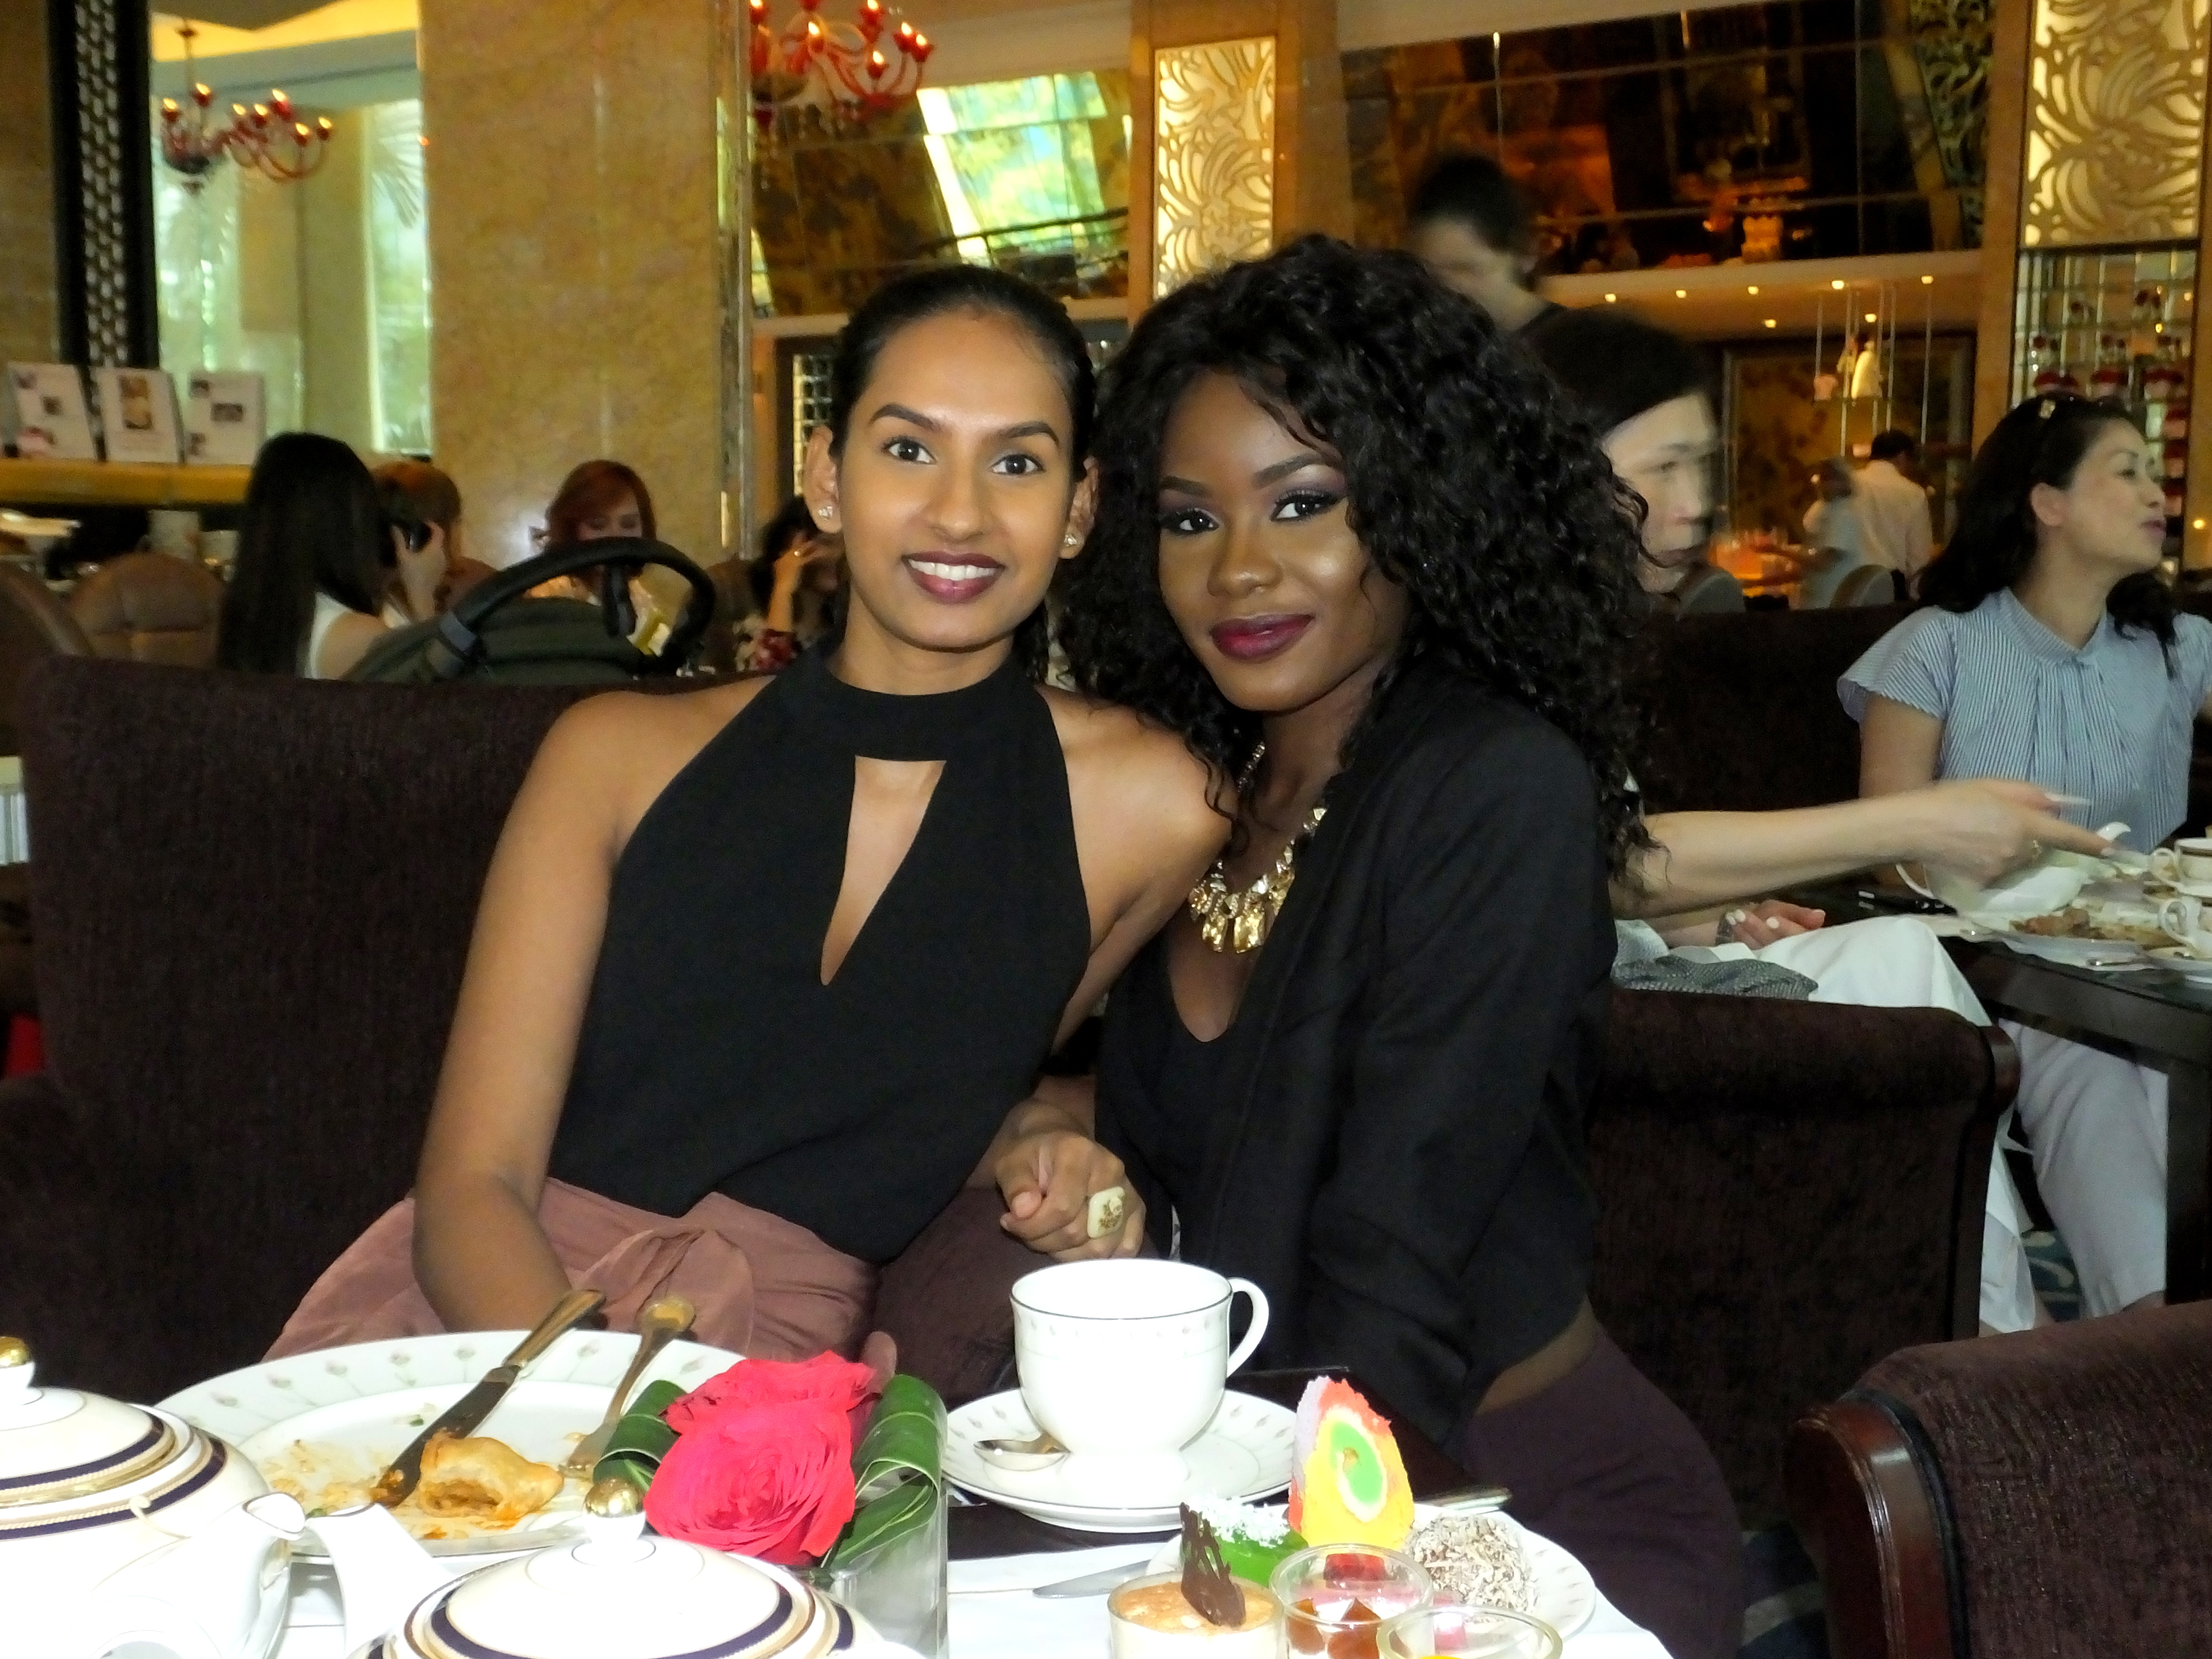 Day with Kiss: High Tea Buffet at The Rose Veranda   Shangri-La Hotel Singapore. Billykiss Azeez - Your Favourite Muse, lifestyle blogger